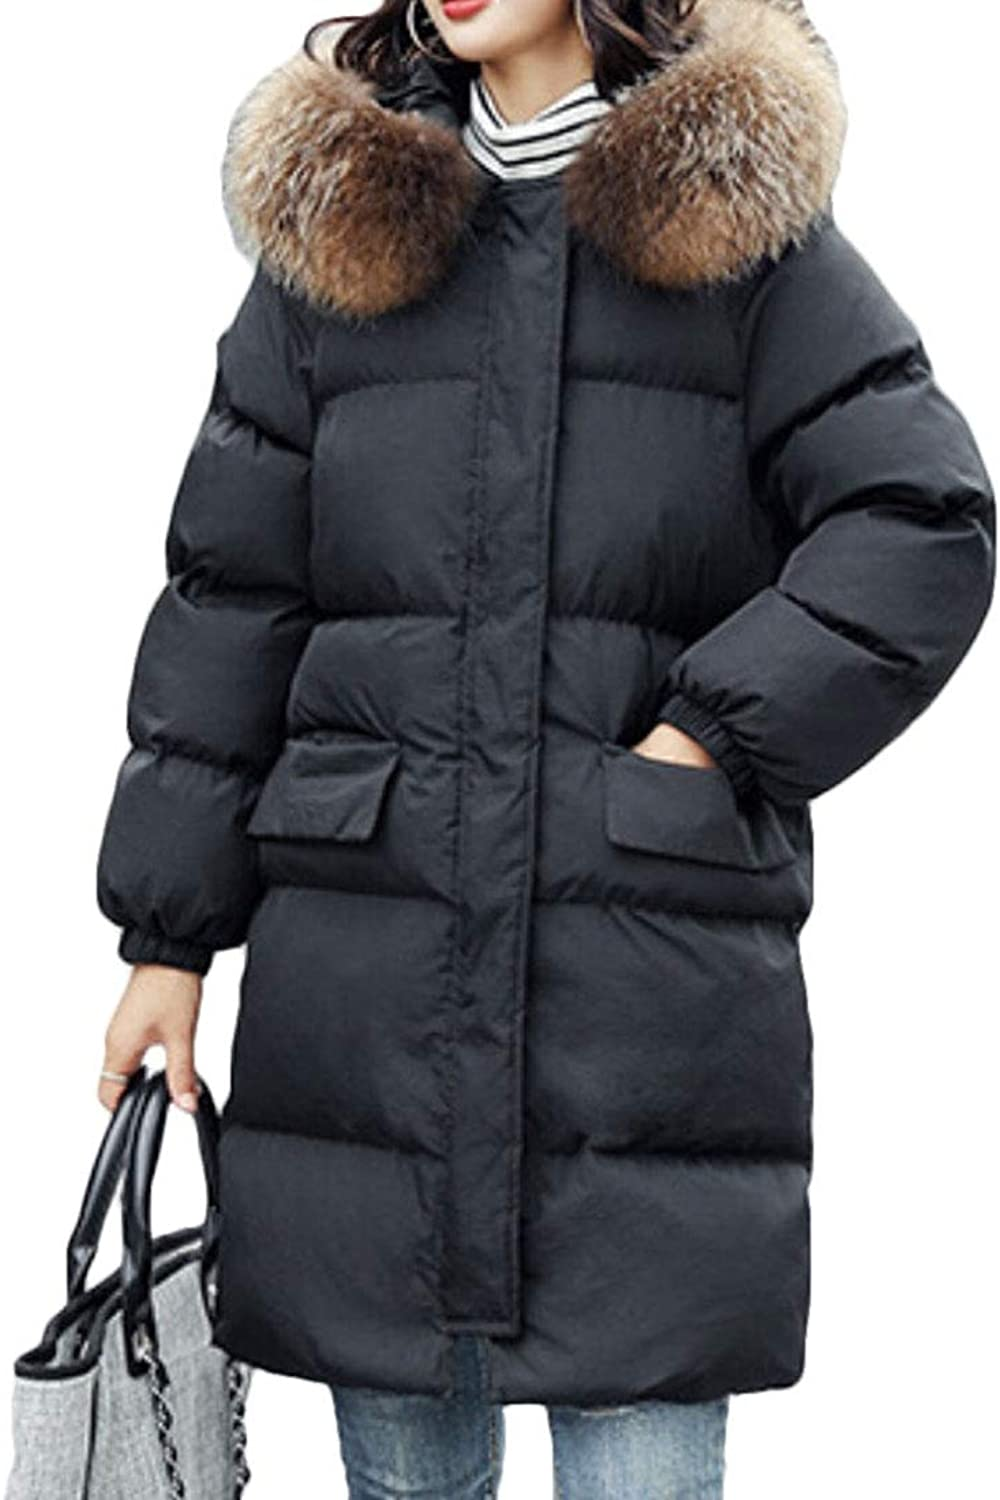 Qiangjinjiu Women Winter Warm Long Parkas Coat Jackets with Faux Fur Hood